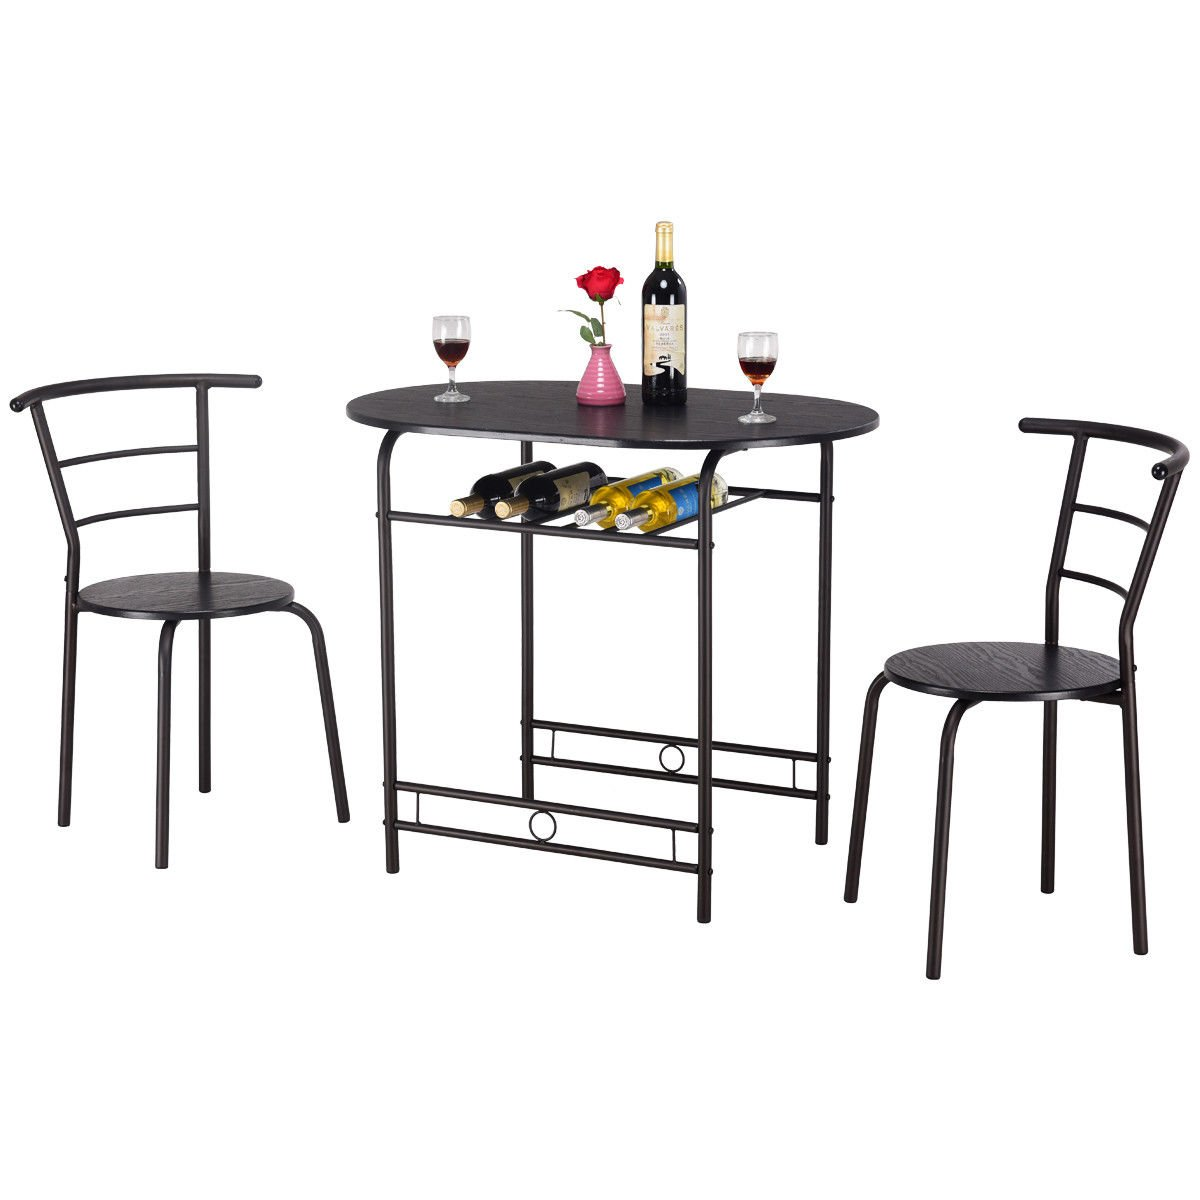 Giantex 3 PCS Dining Table Set w/1 Table and 2 Chairs Home Restaurant Breakfast Bistro Pub Kitchen Dining Room Furniture (Black) by Giantex (Image #1)